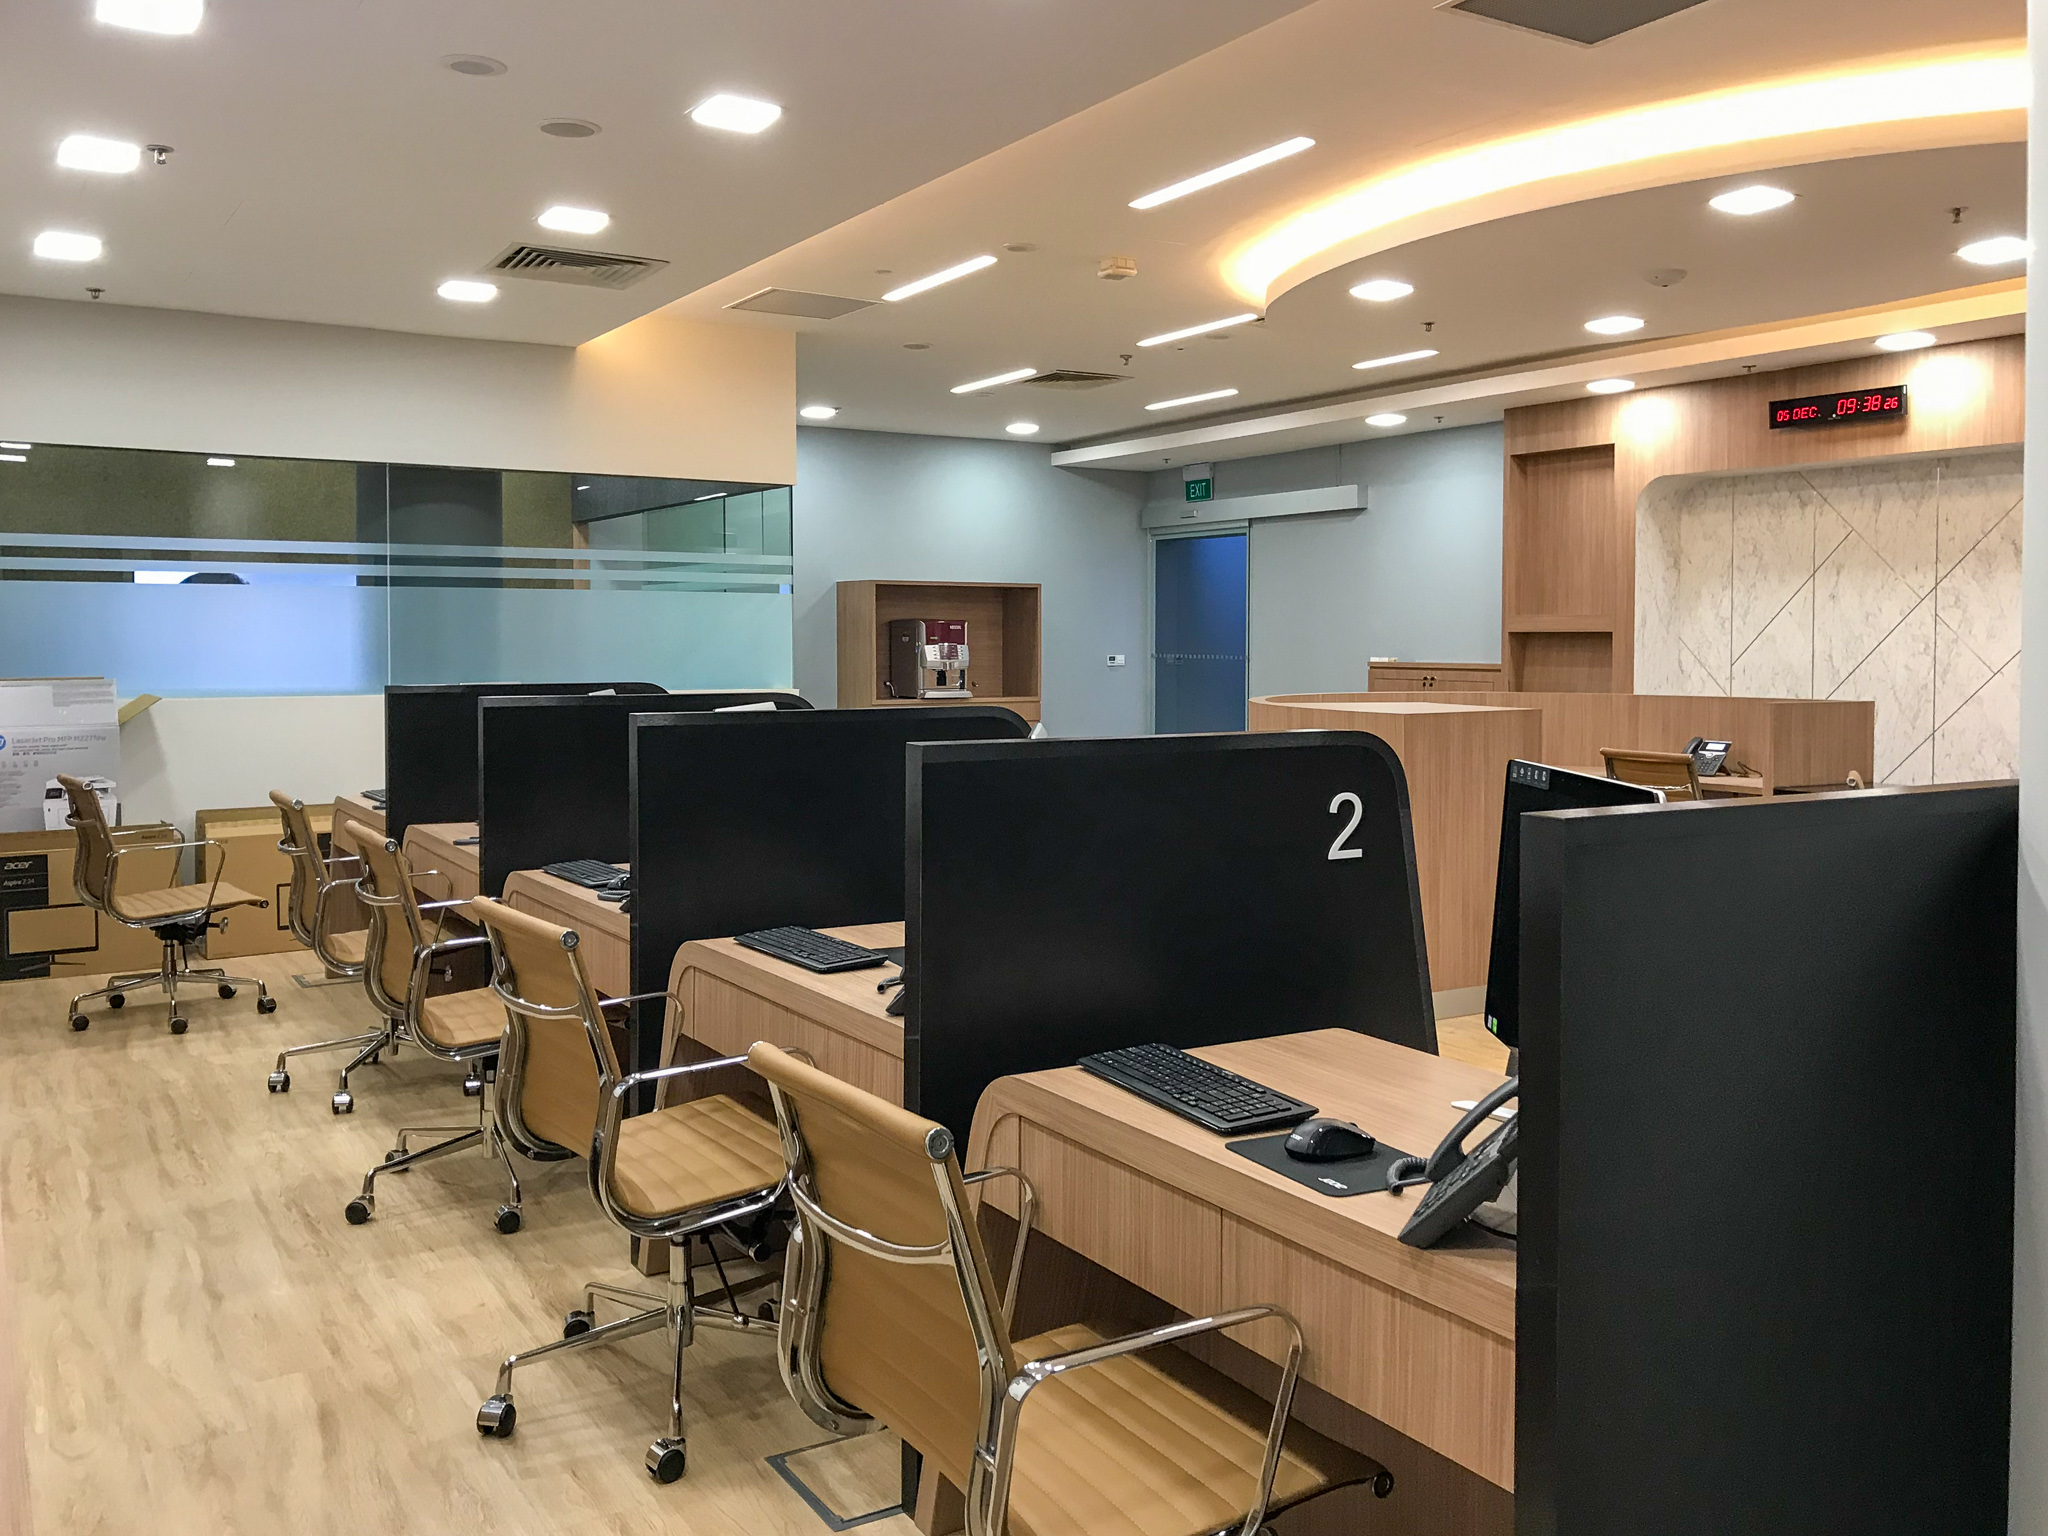 Commercial interior design and build